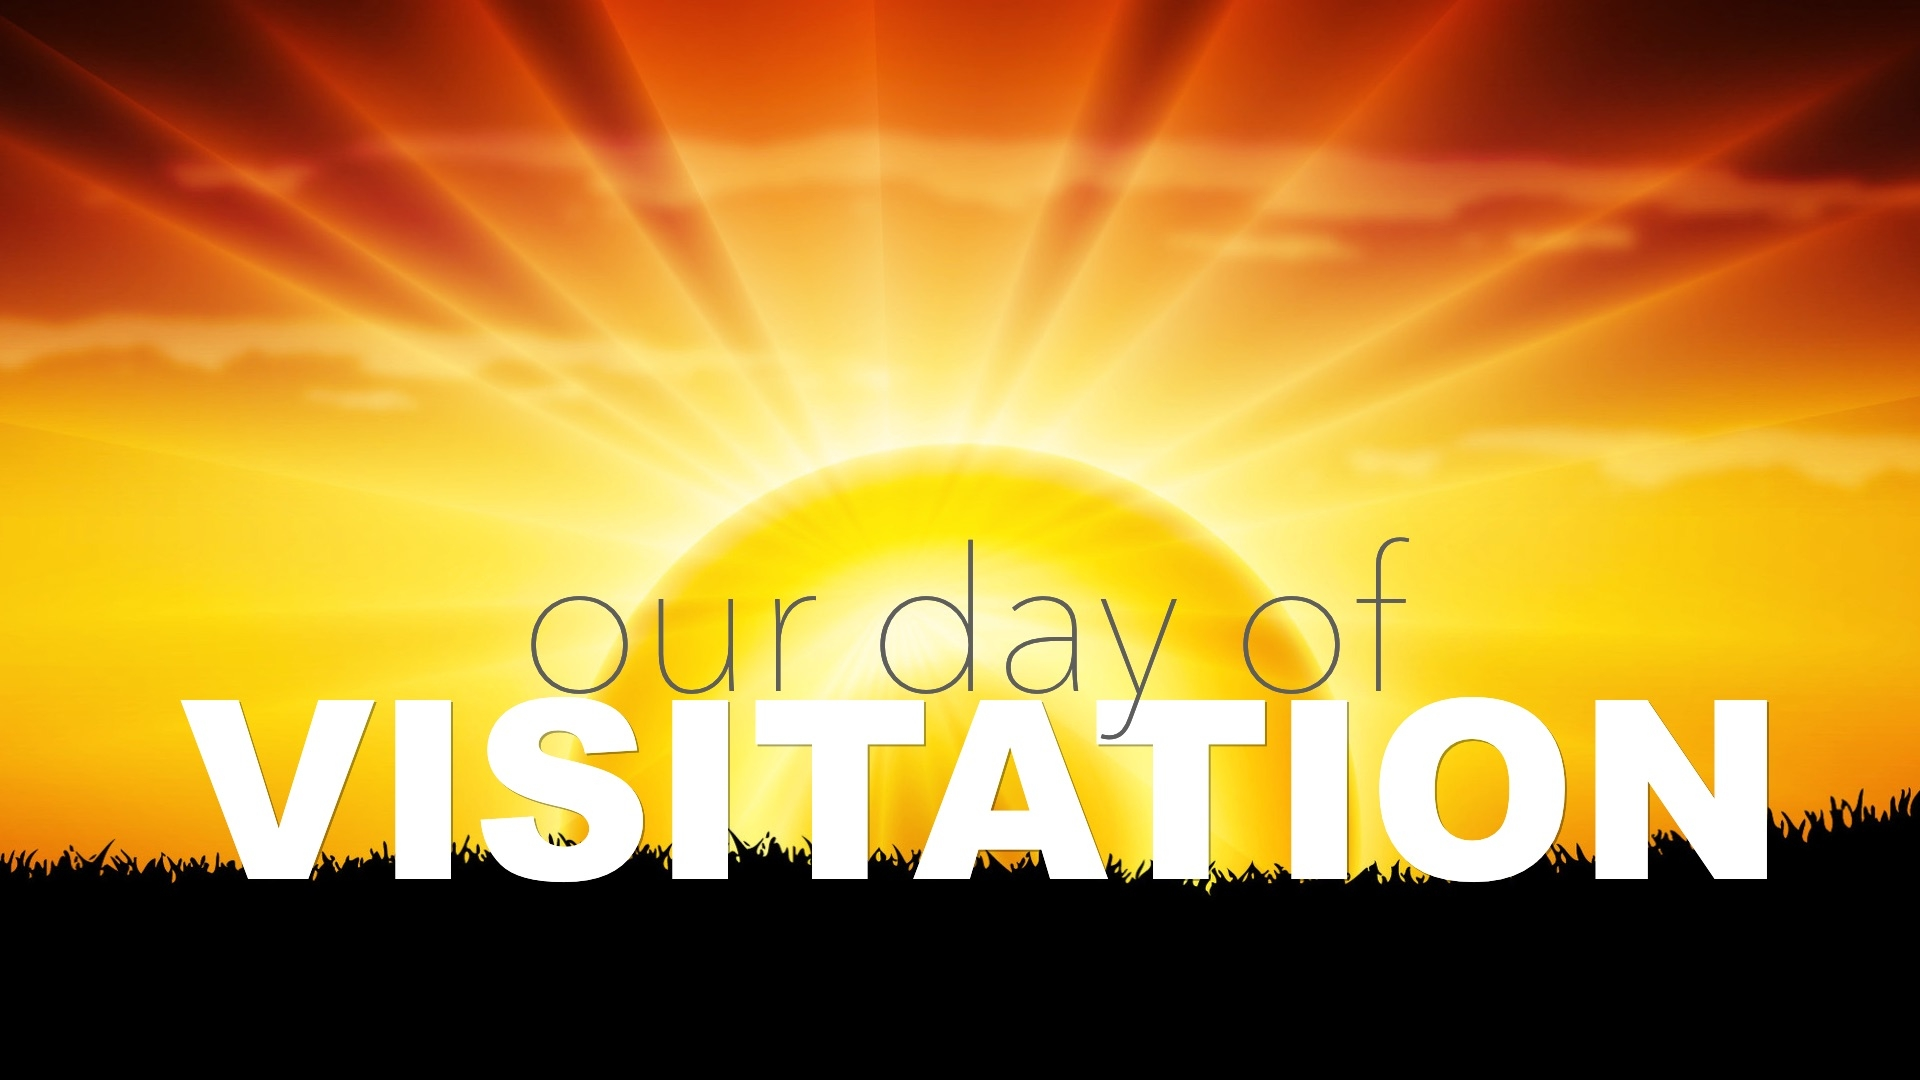 Our Day Of Visitation